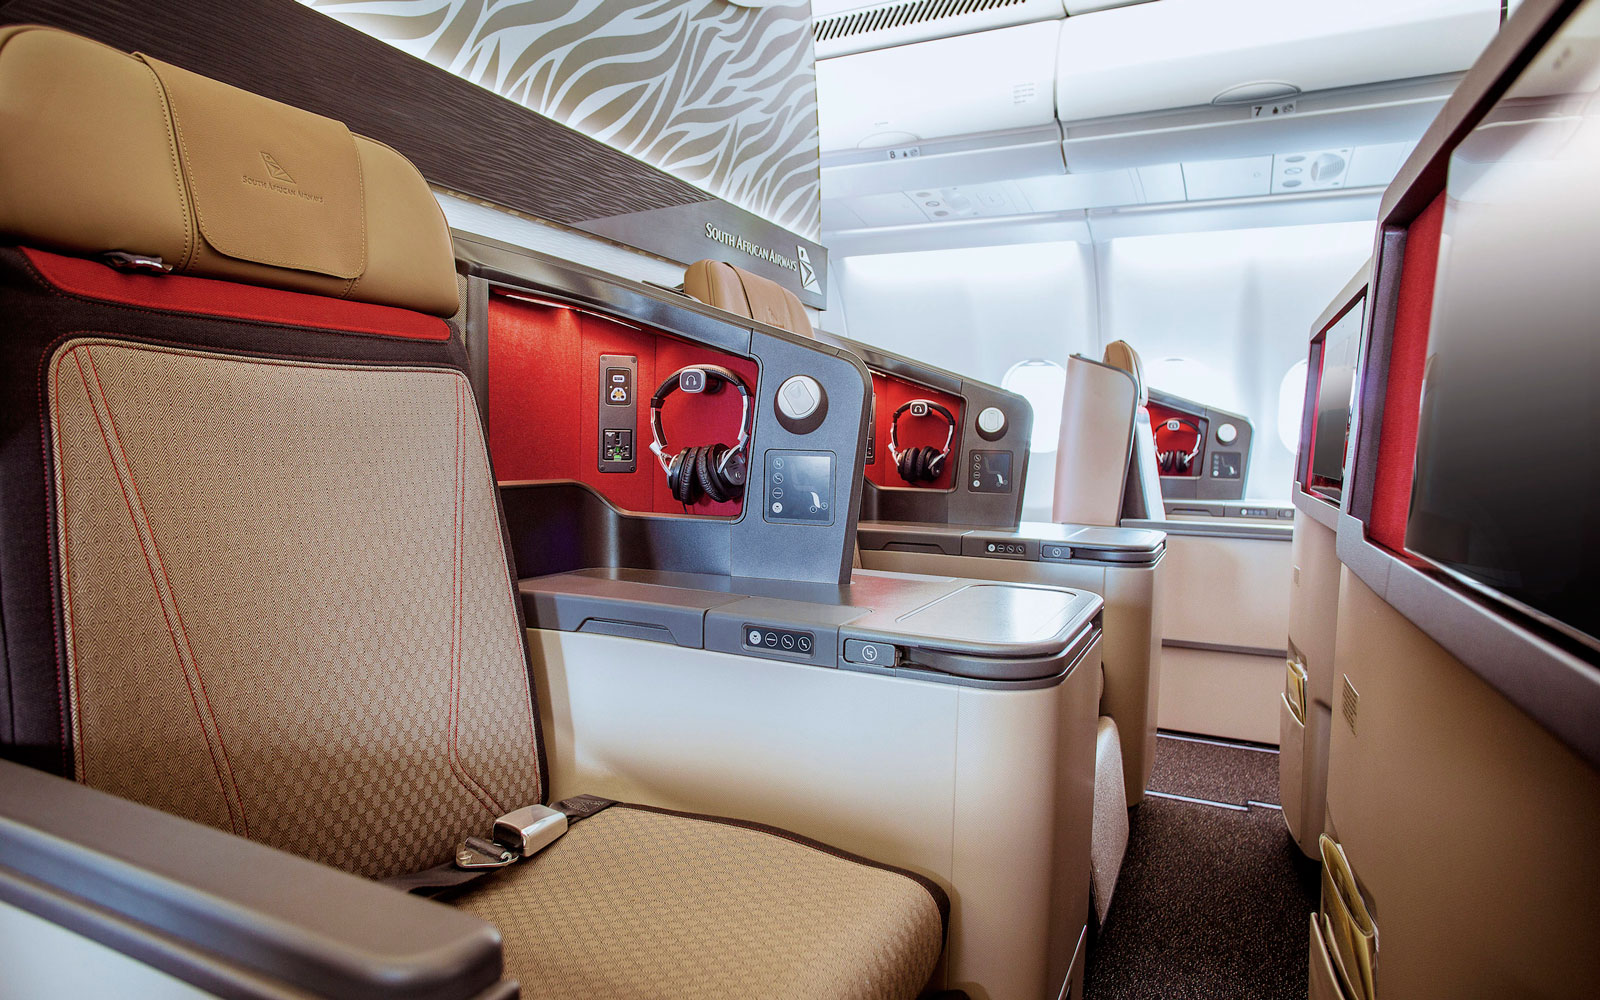 Flagship airlines use design elements to represent their countries.